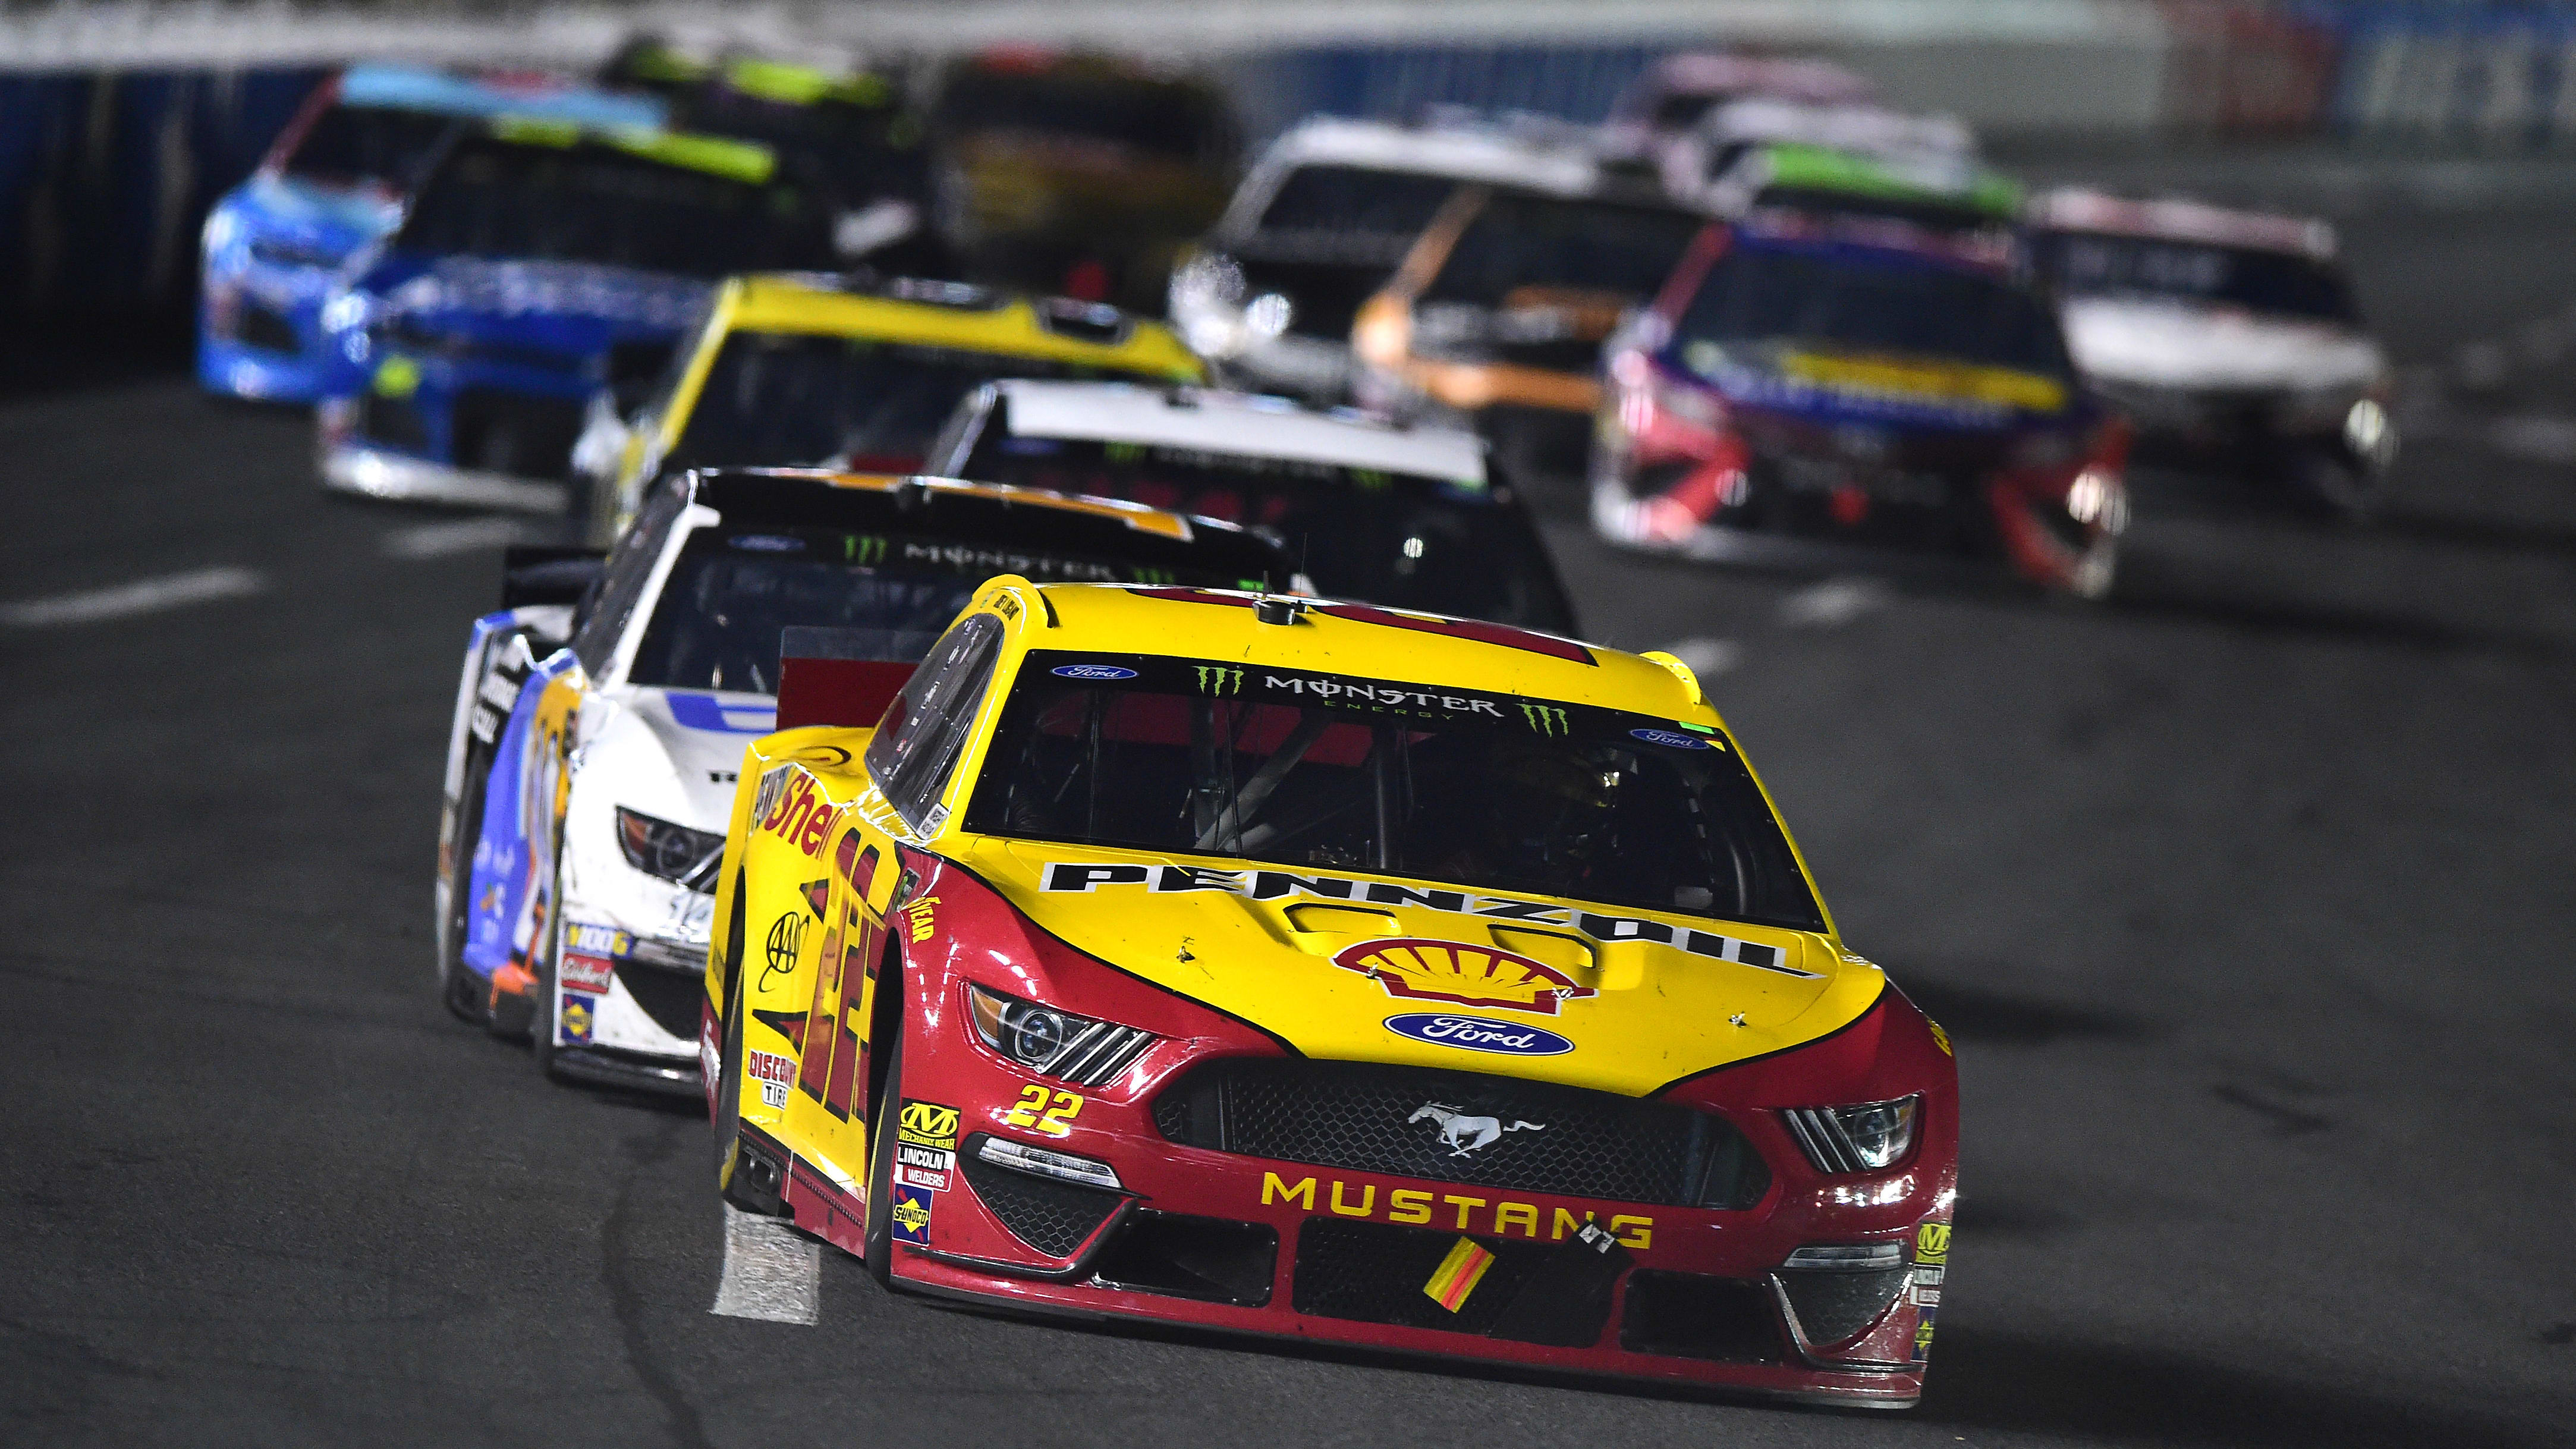 CHARLOTTE, NORTH CAROLINA - MAY 18: Joey Logano, driver of the #22 Shell Pennzoil Ford, leads a pack of cars during the Monster Energy NASCAR Cup Series All-Star Race at Charlotte Motor Speedway on May 18, 2019 in Charlotte, North Carolina. (Photo by Jared C. Tilton/Getty Images)